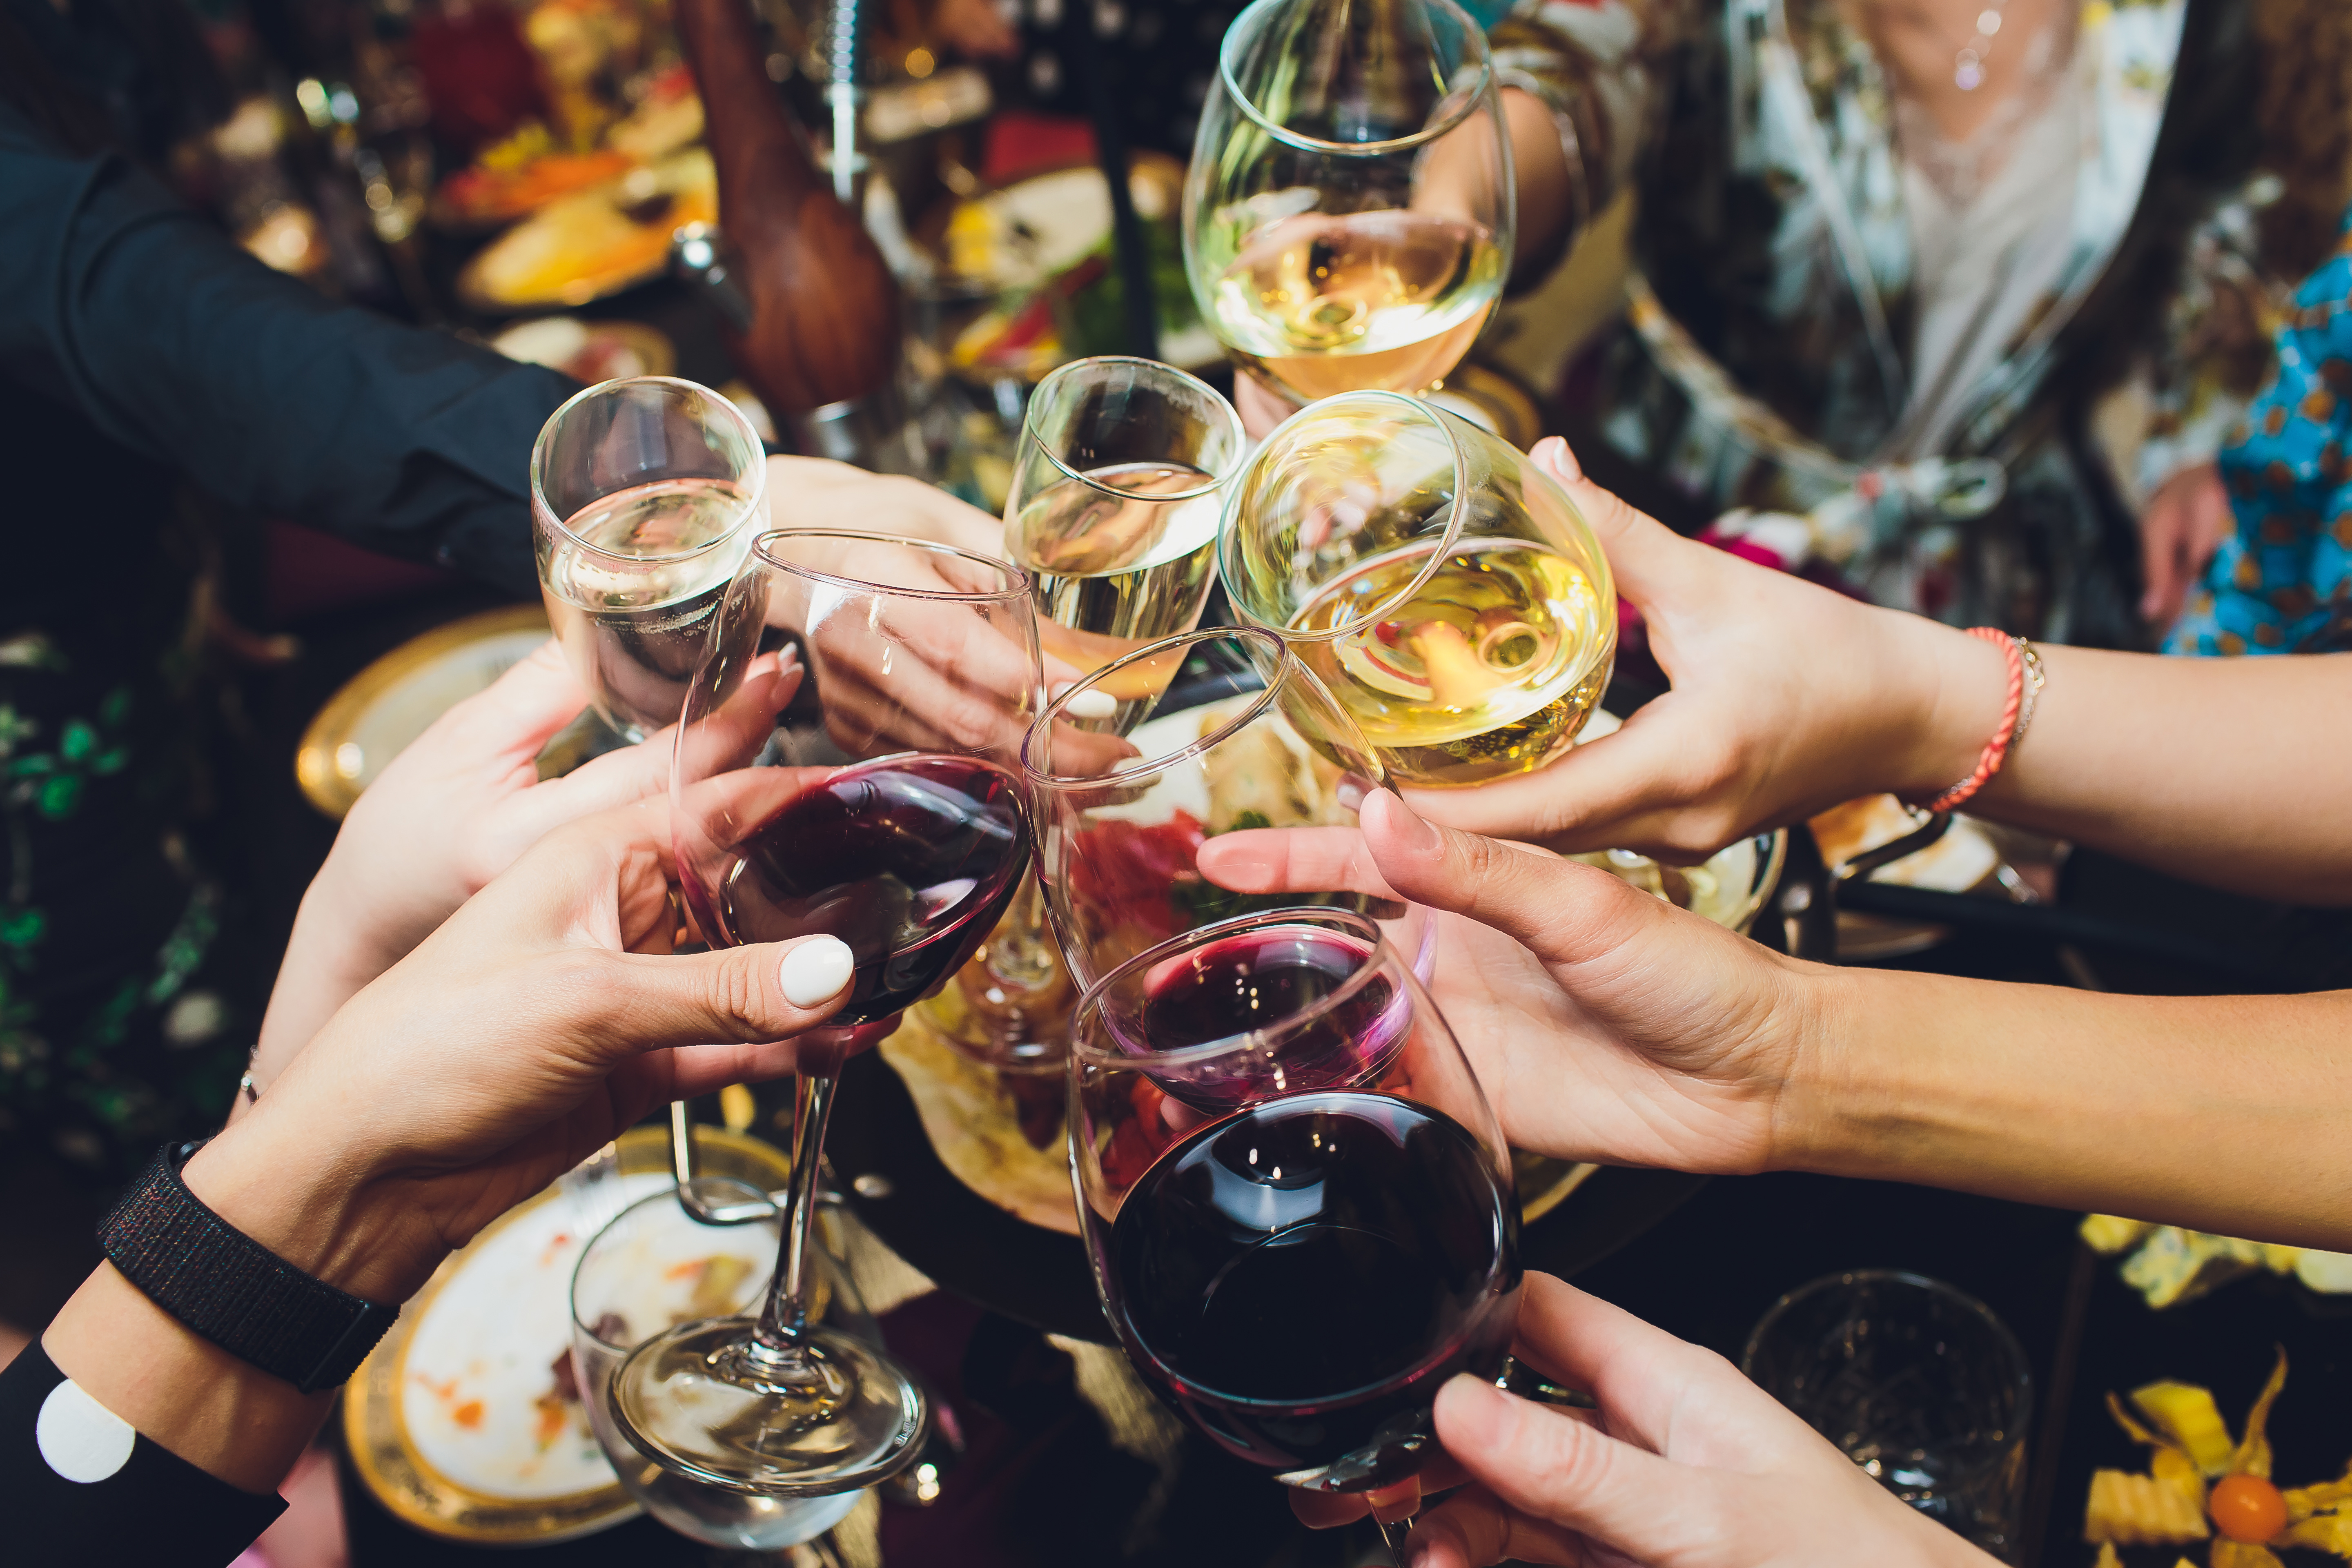 Sober is the new vegan. You might want to consider abstaining from alcohol through the Dry January Challenge. It could lead to better overall health and healthier drinking behavior.